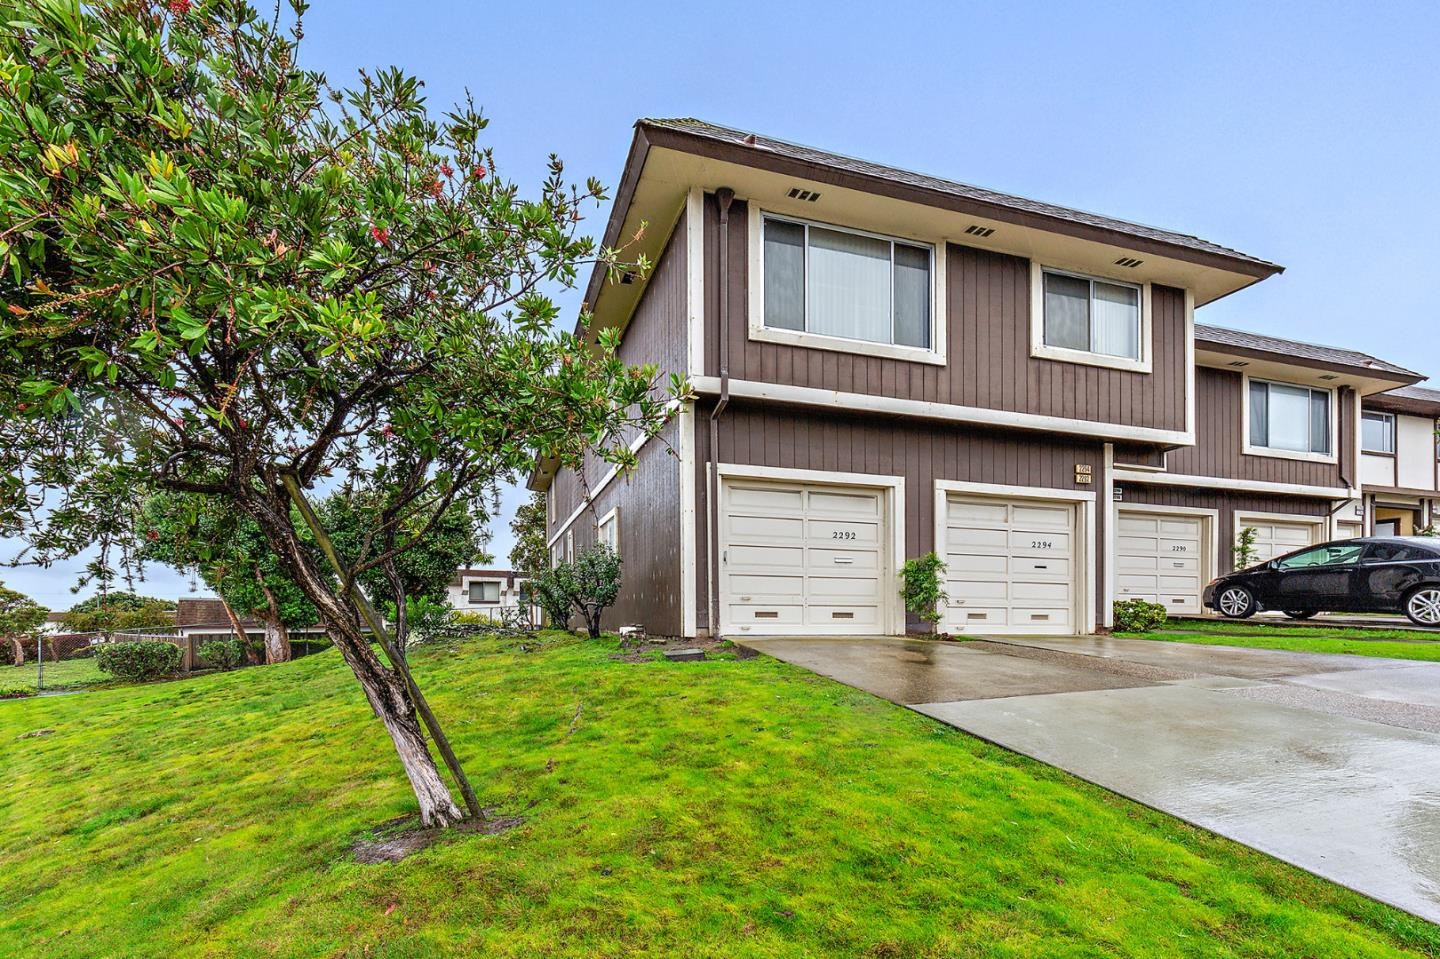 Image for 2294 Greendale Drive, <br>South San Francisco 94080